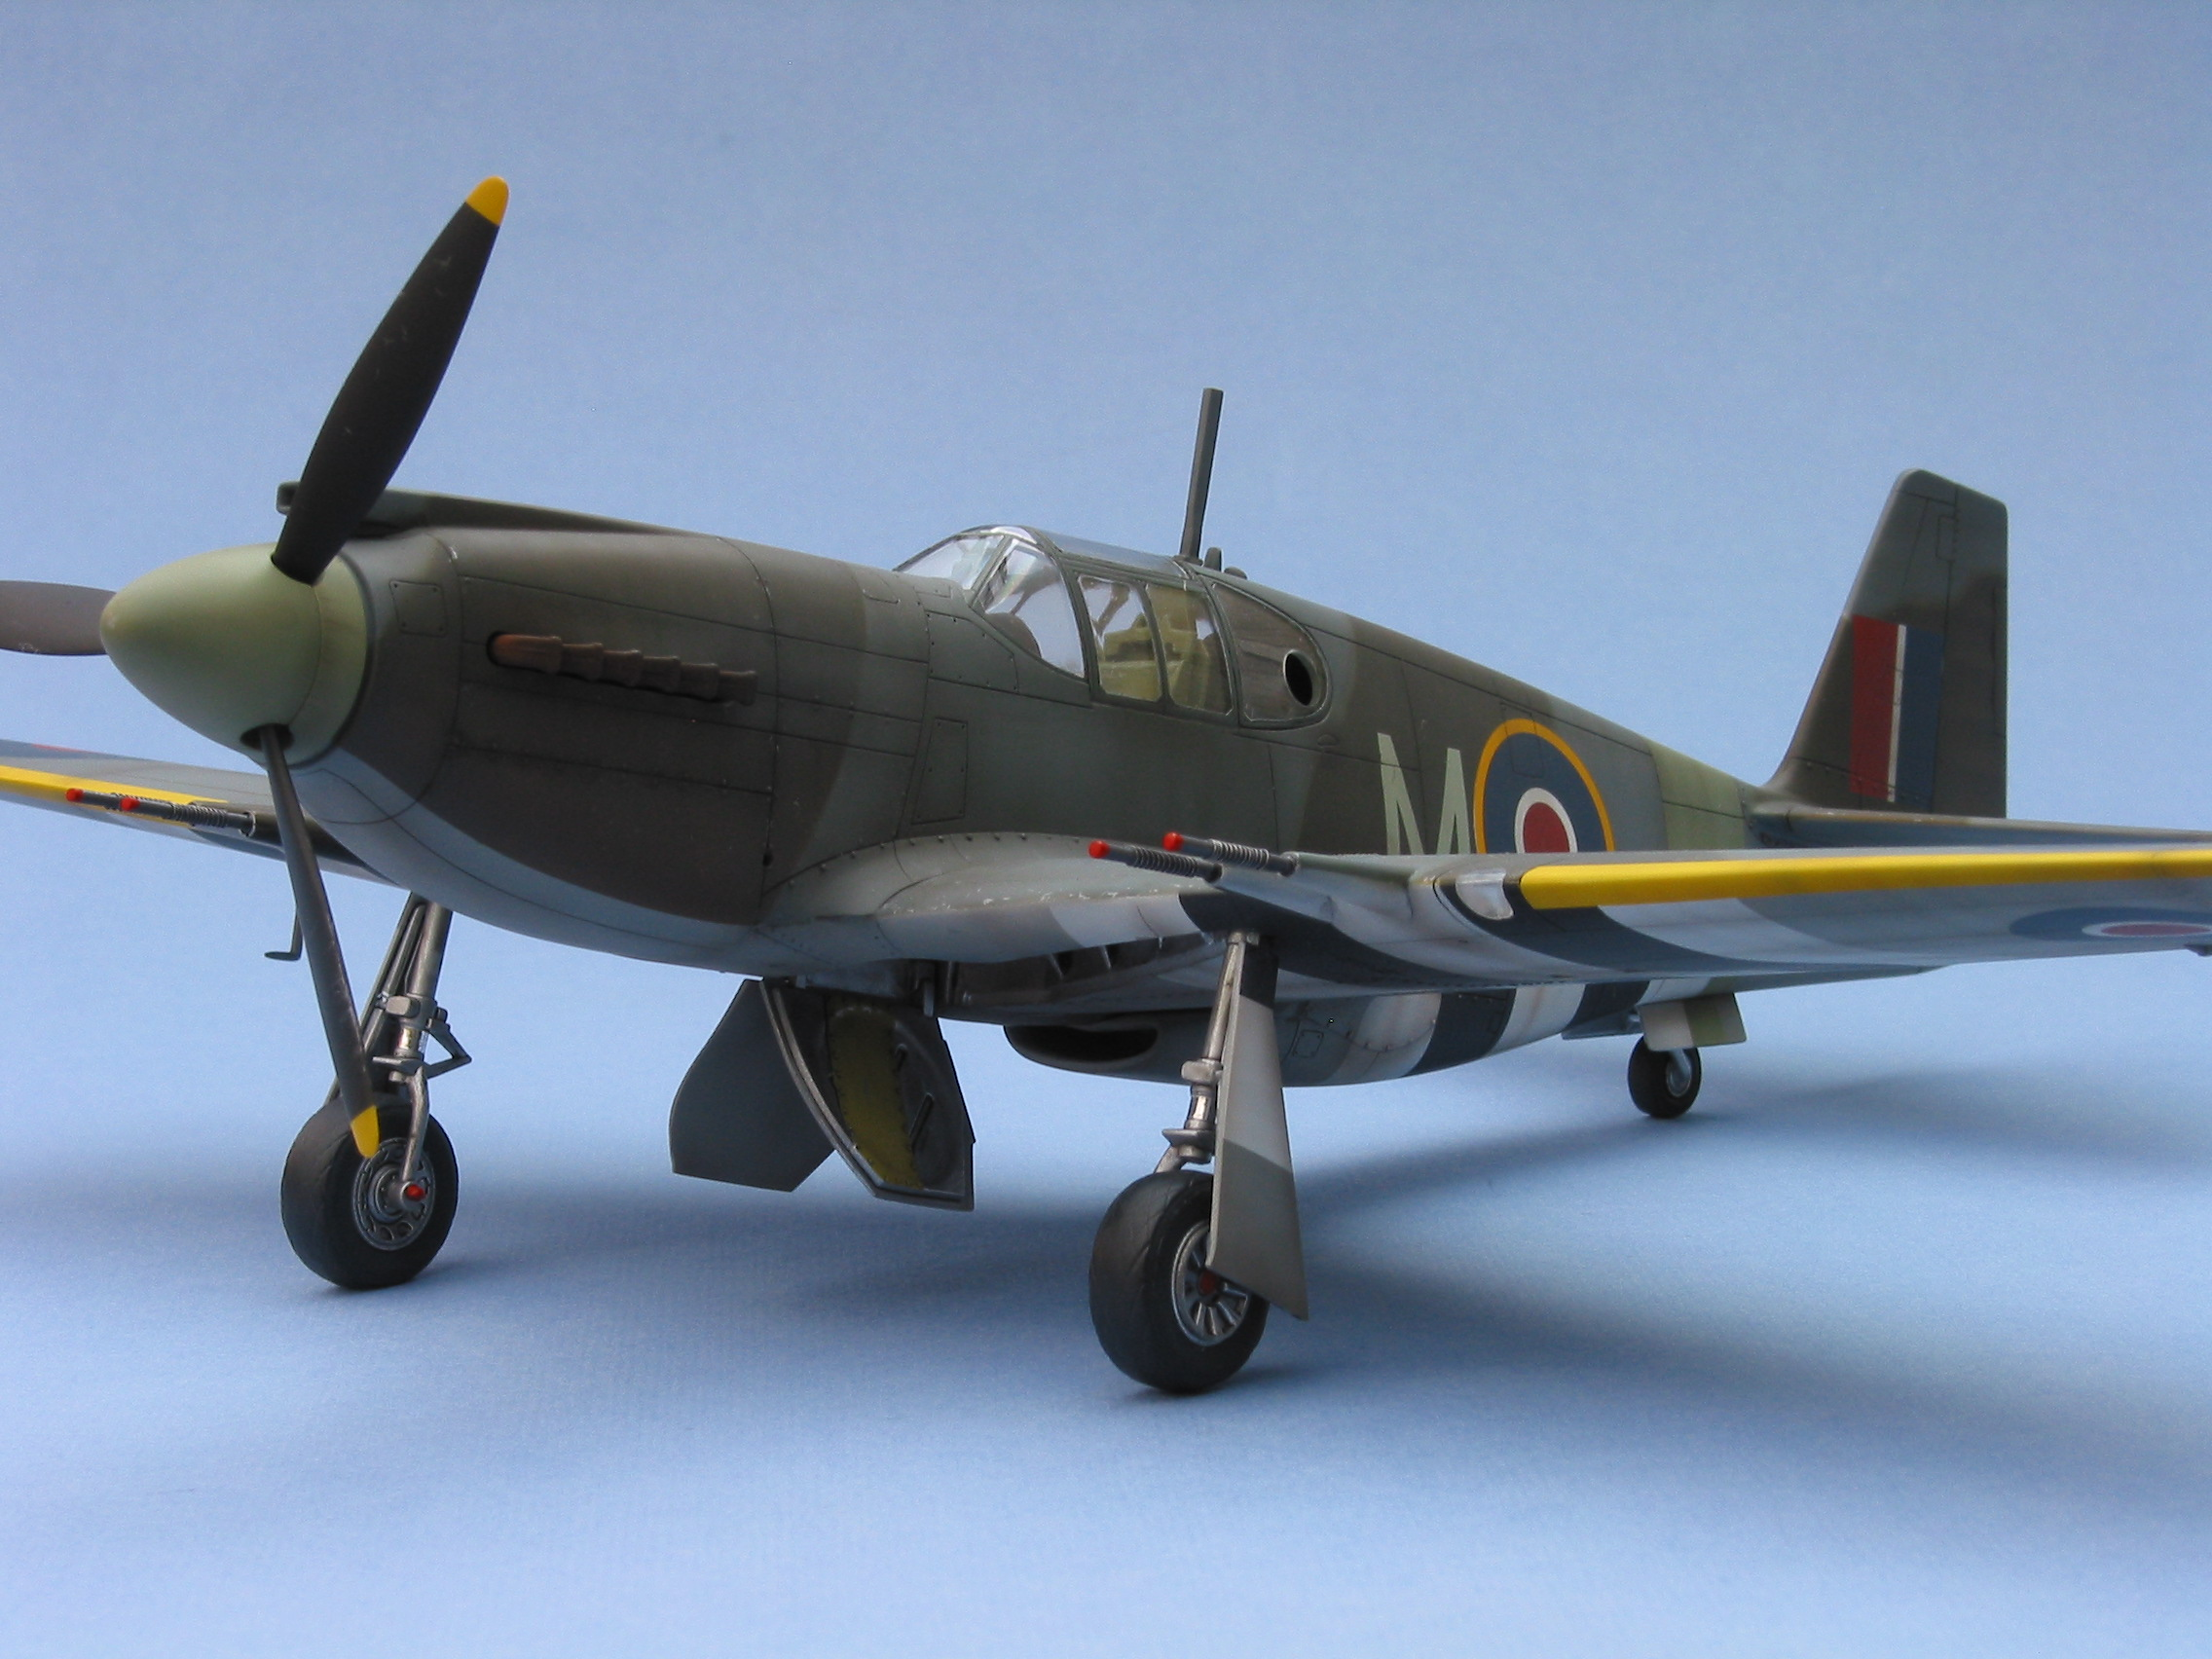 Hobbycraft 1/32 Mustang Mk.IA Build Review